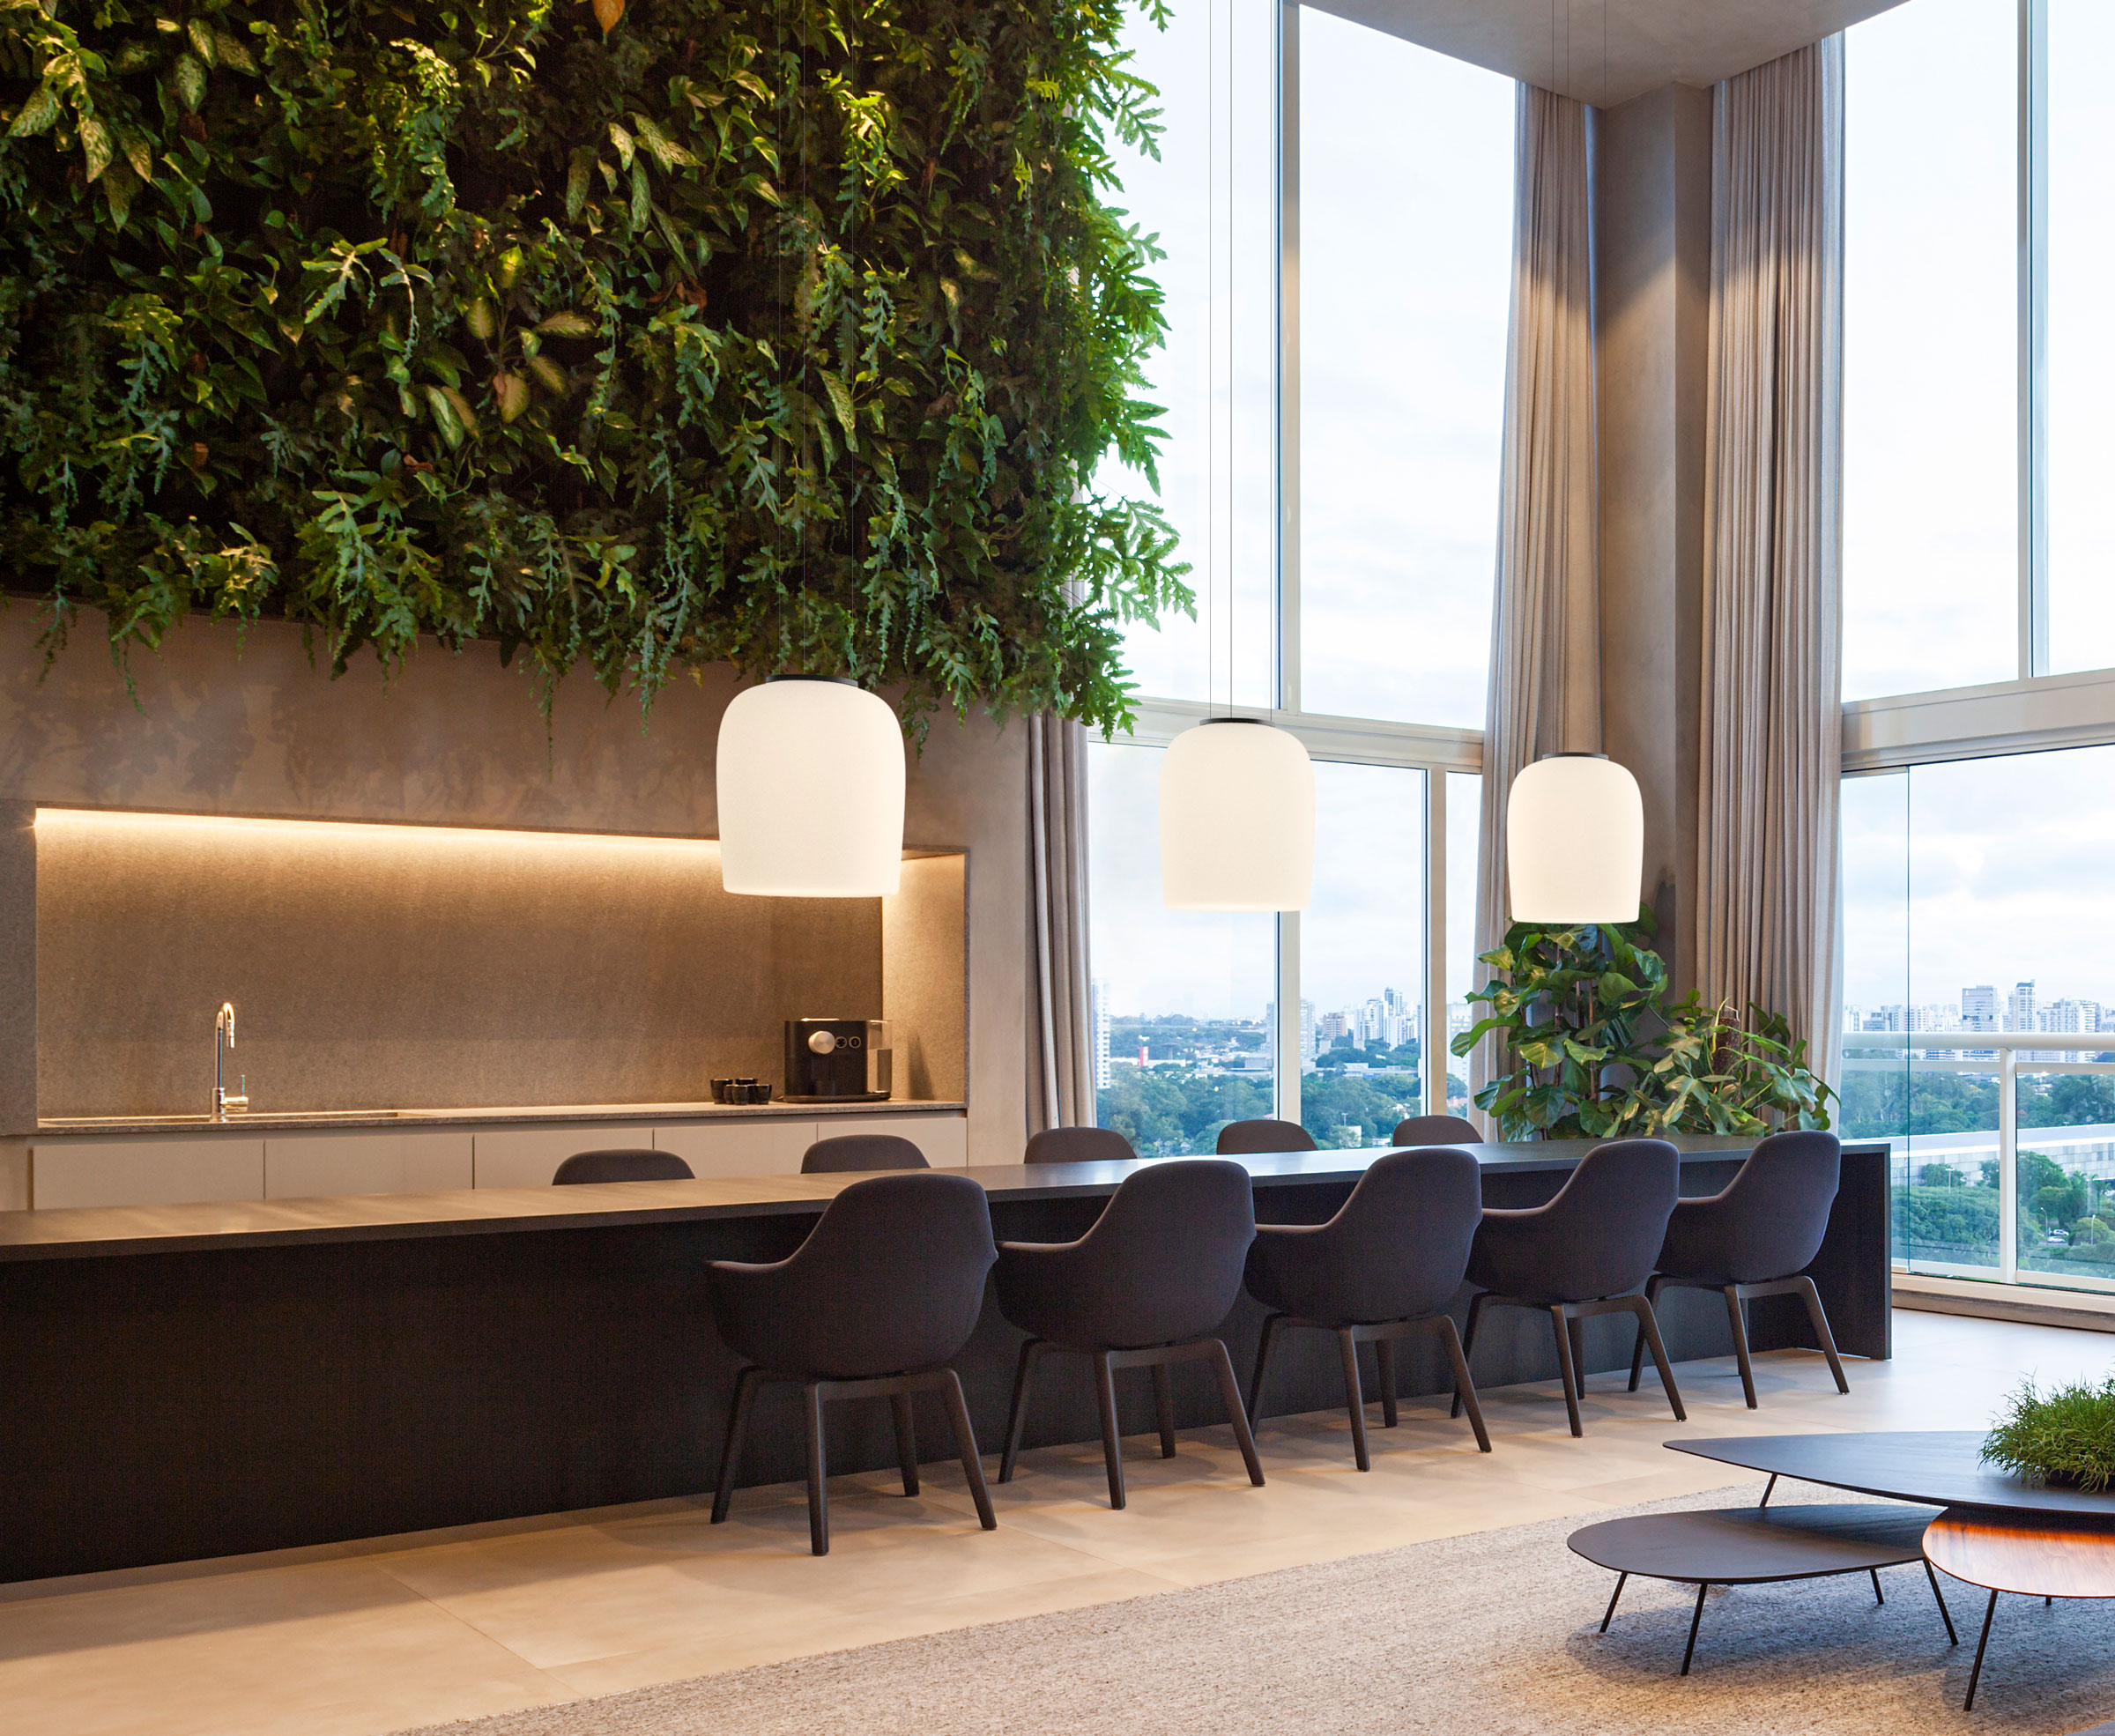 Vibia The Edit - An Ethereal Presence: Introducing Vibia's Ghost Collection